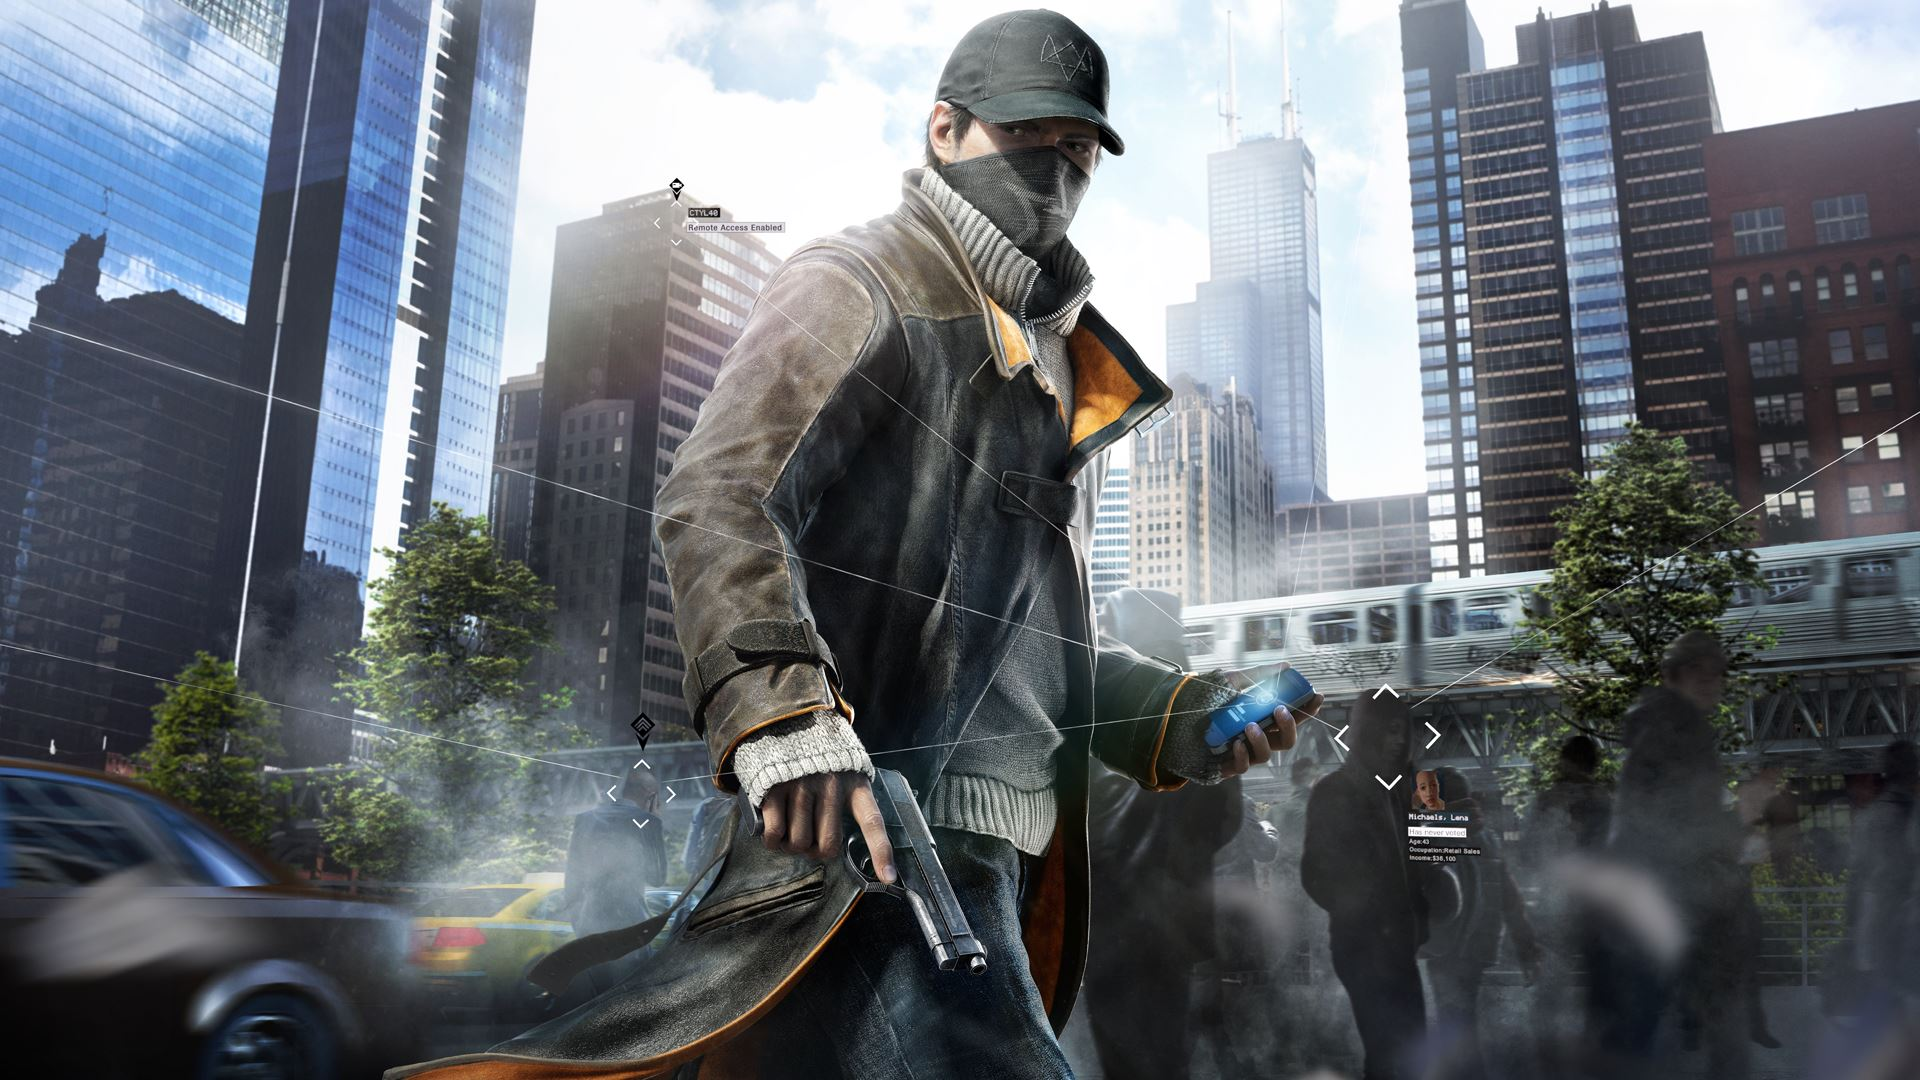 Here's our 2019 article for 'Watch Dogs 3 will be set in London' screenshot